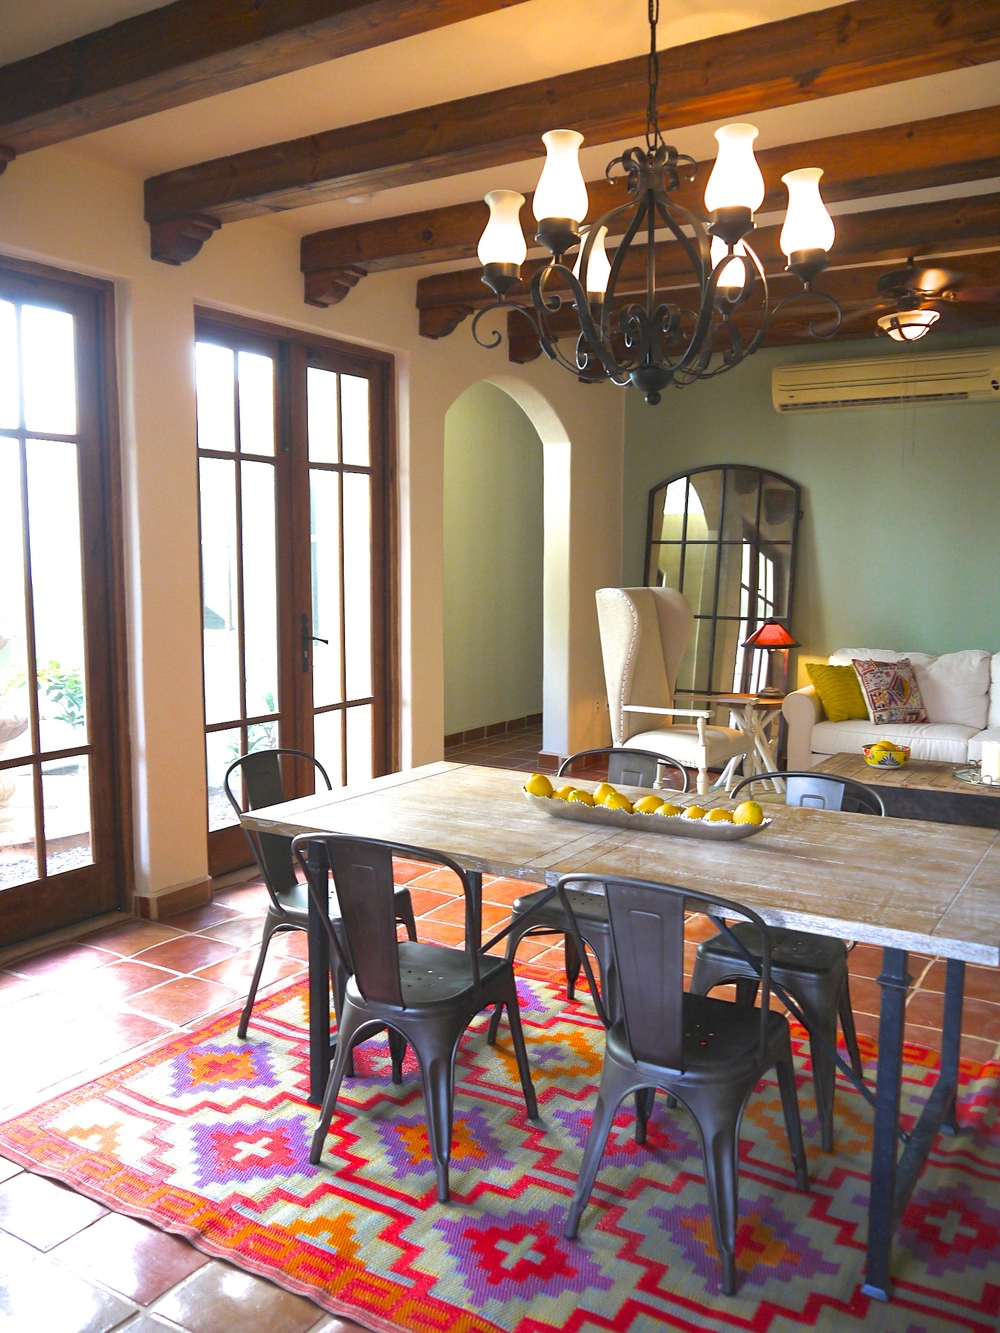 Dining table, doors leading out to private fountain courtyard